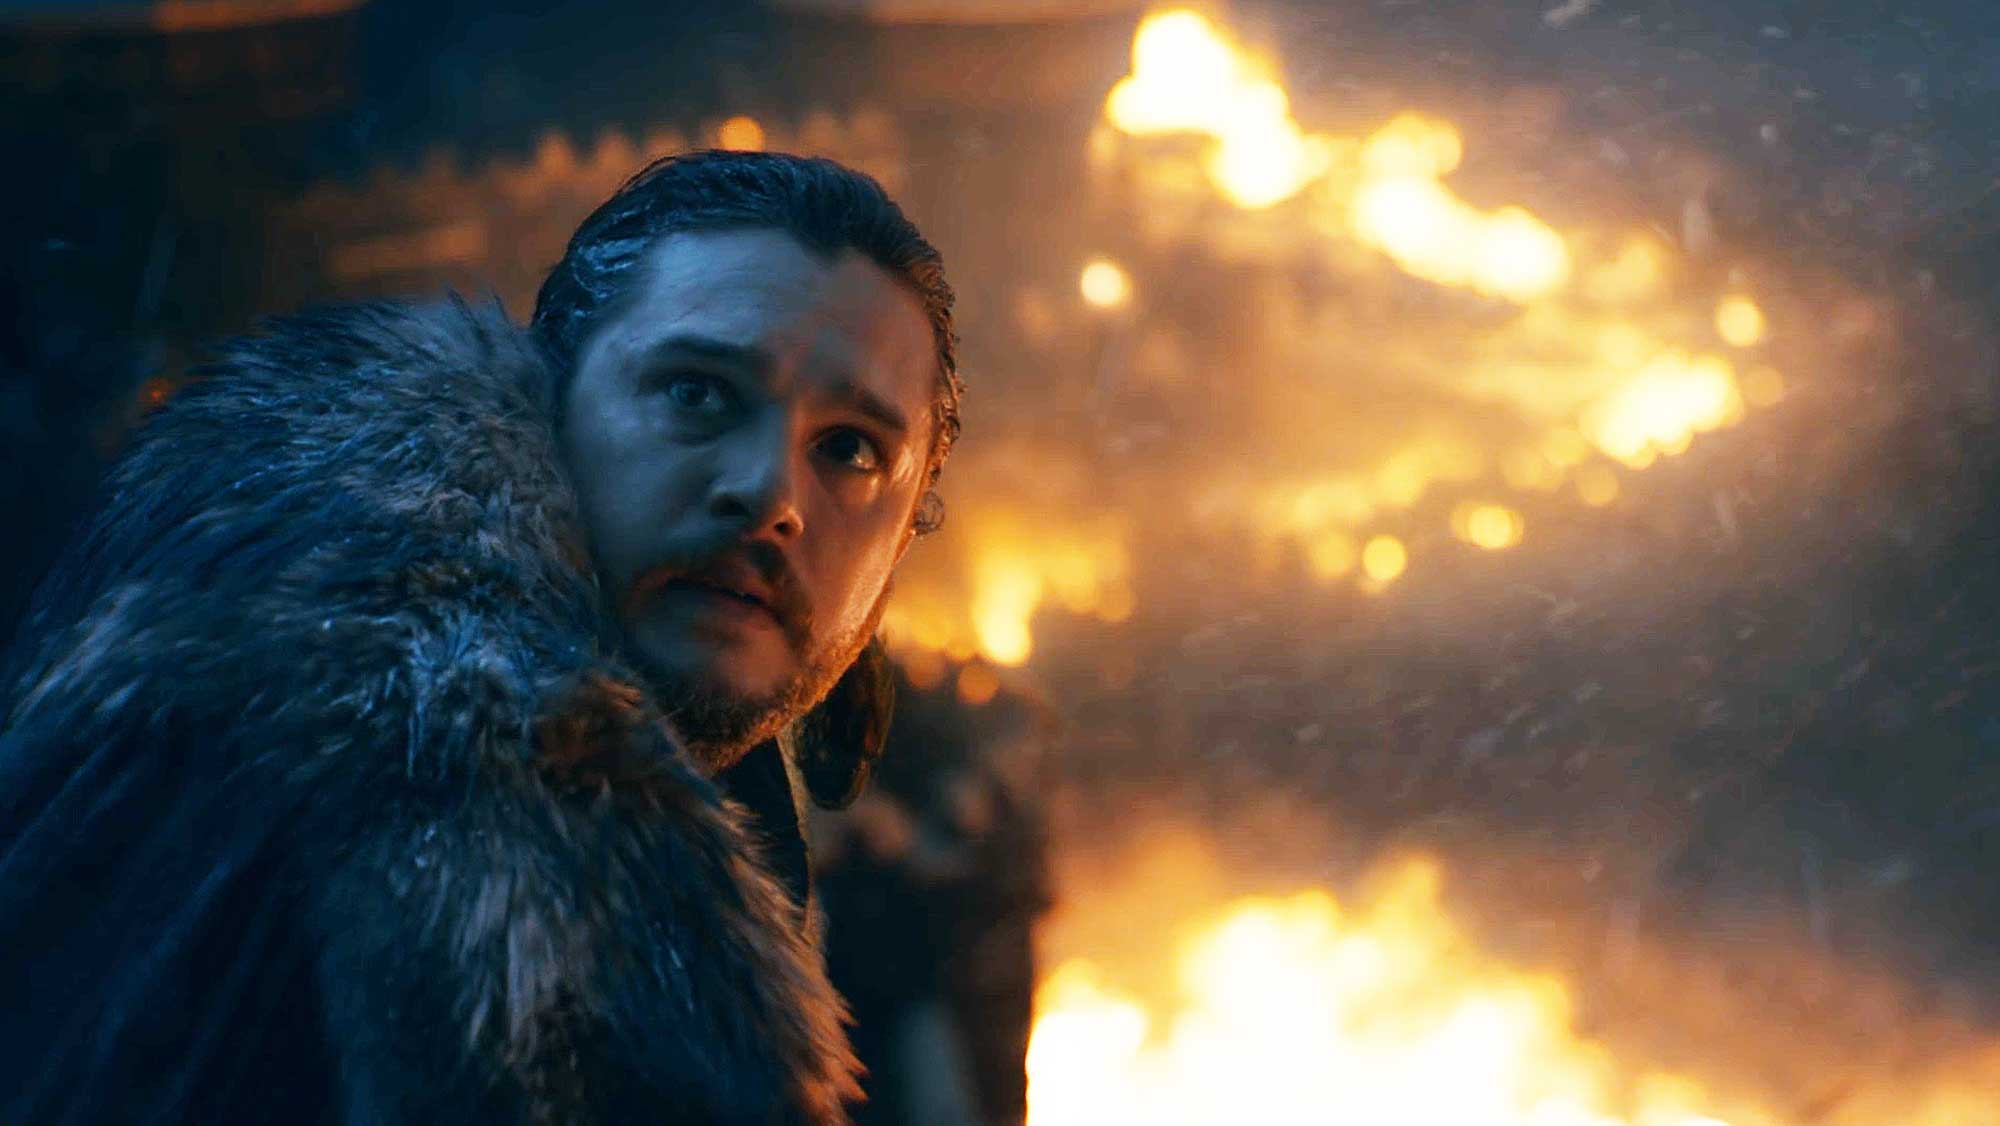 Review Game Of Thrones S08e03 The Long Night Schlacht Um